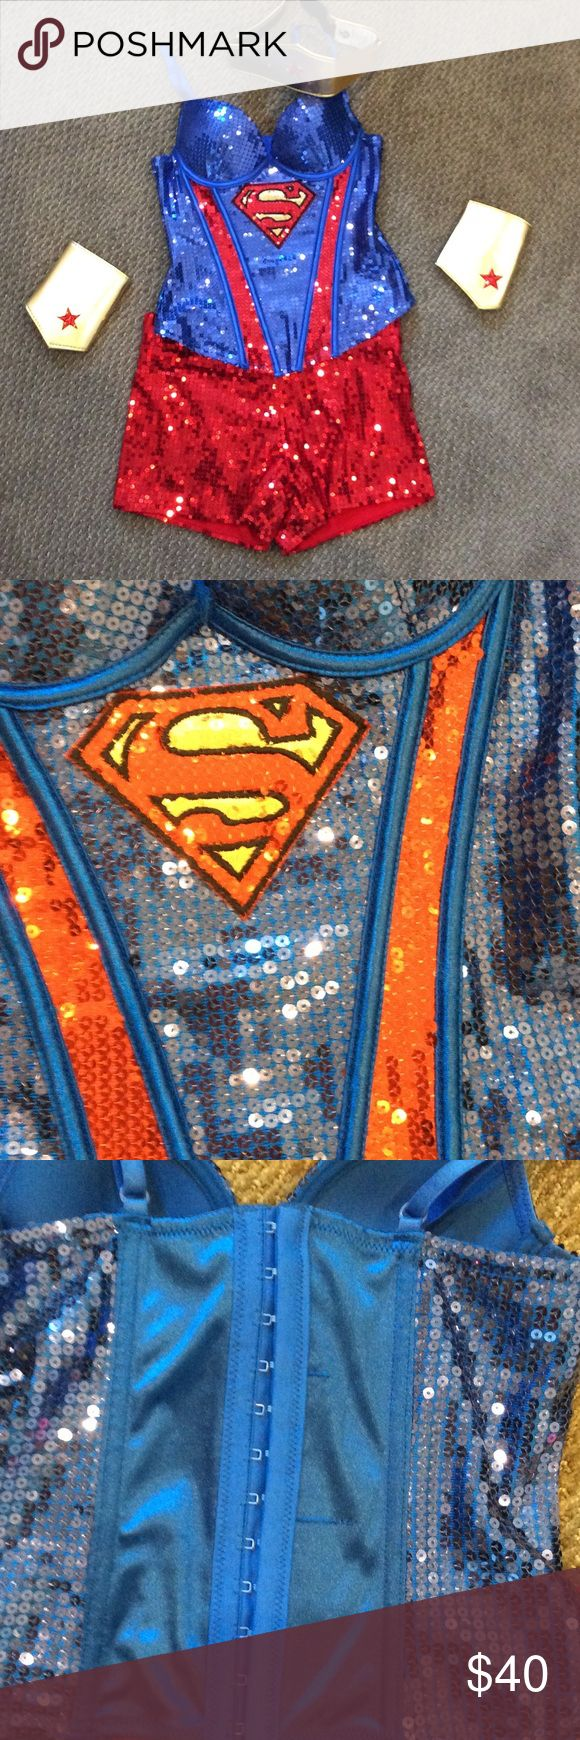 Super woman costume Blue and red sequin costume includes bustier,shorts 2 wrist bands and a headband Other